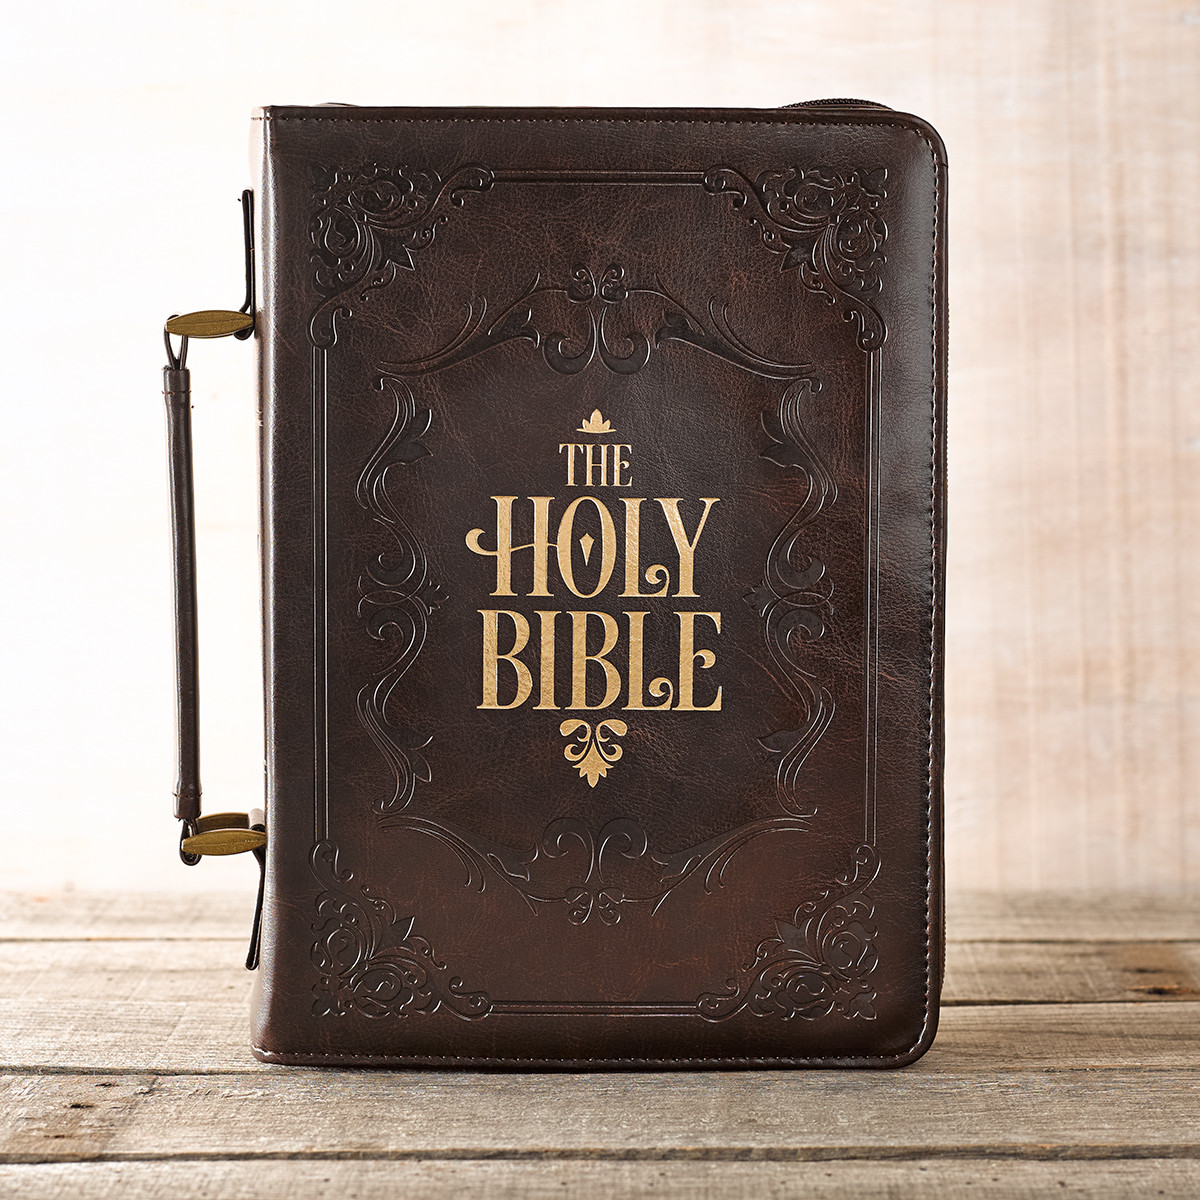 Medium Holy Bible Bible Cover bible cover, medium bible cover, book cover, zipper cover, religious bible cover, The Holy Bible,BBM570